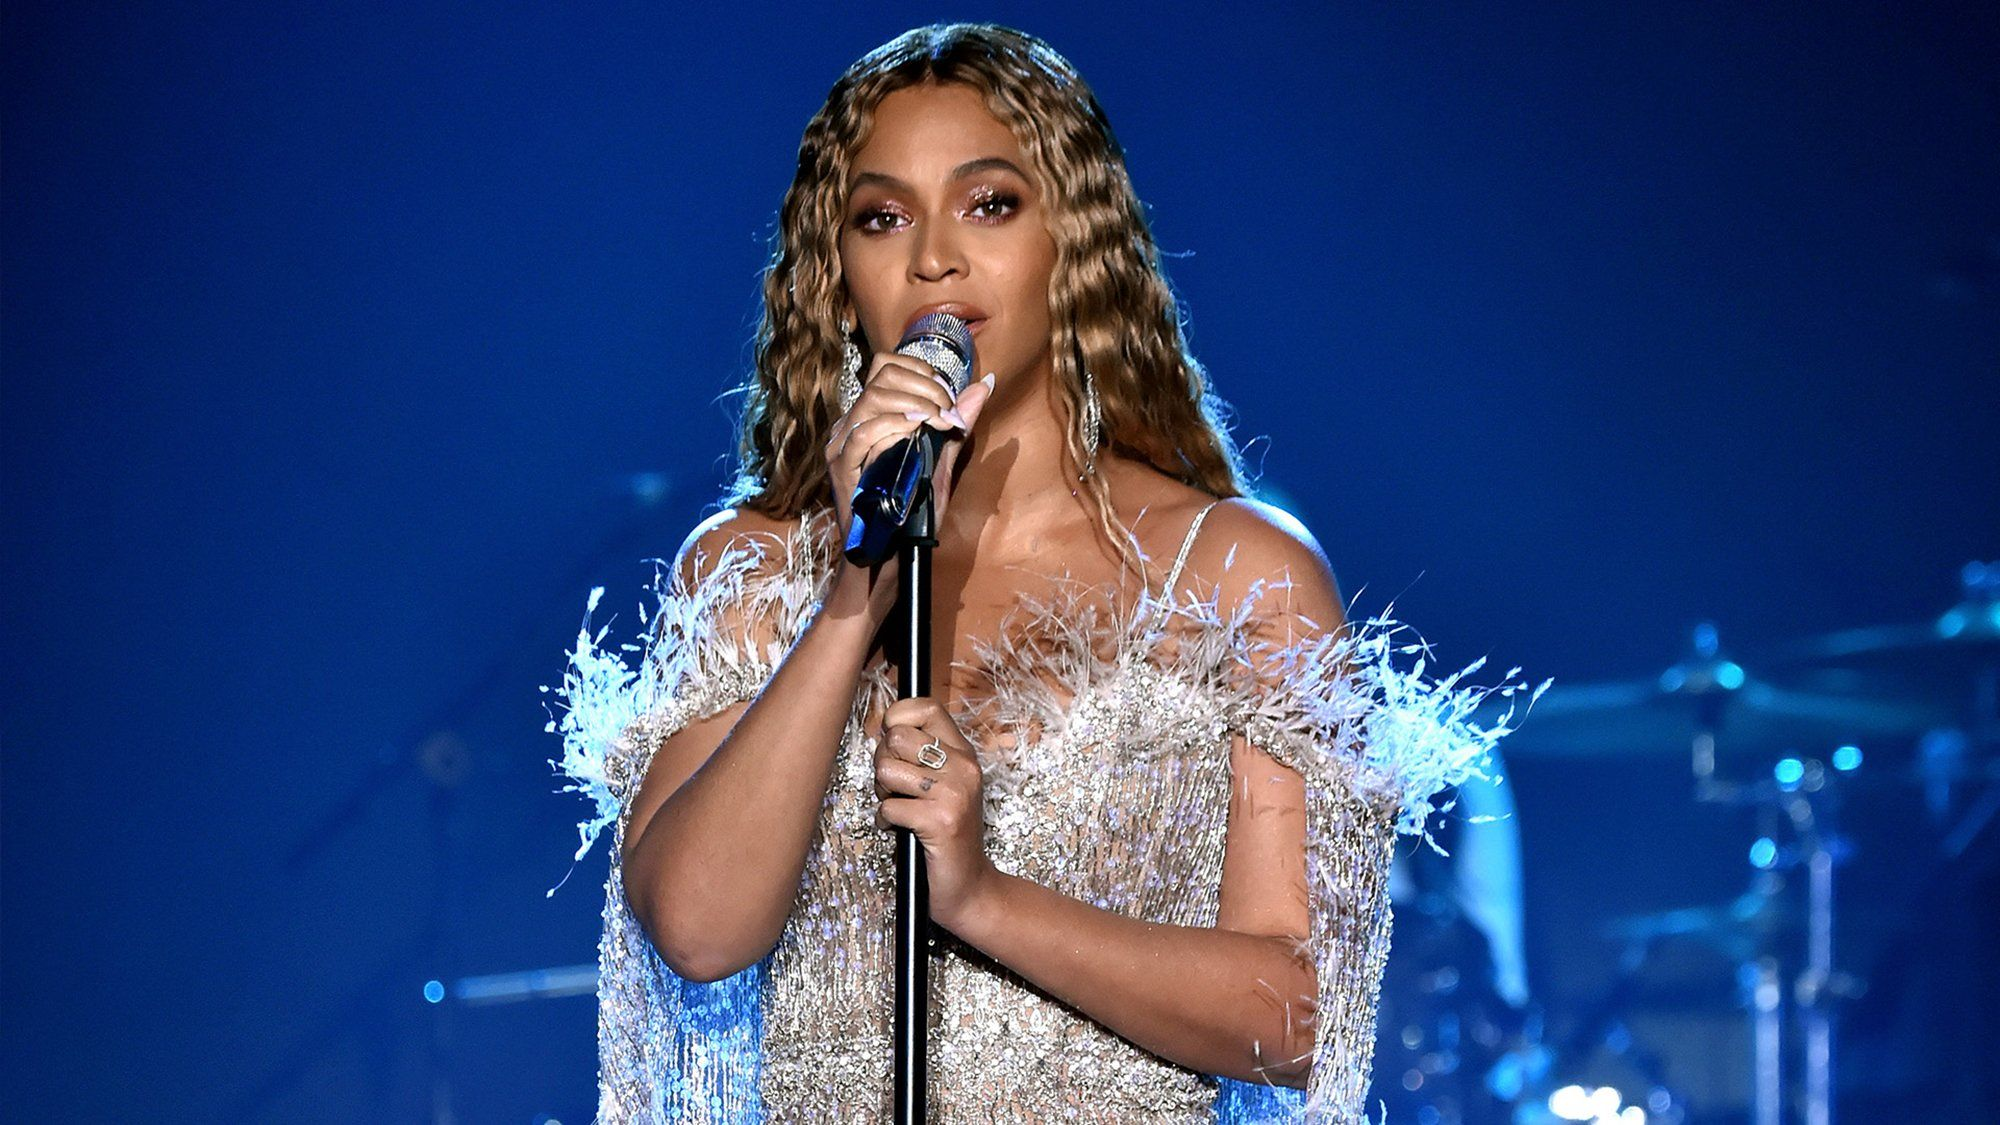 Kanye West S Behavior At The 2009 Vmas Left Both Beyonce And Taylor Swift In Tears A Small Gesture Made Things Slightly Better Beyonce Beyonce Songs Donald Glover